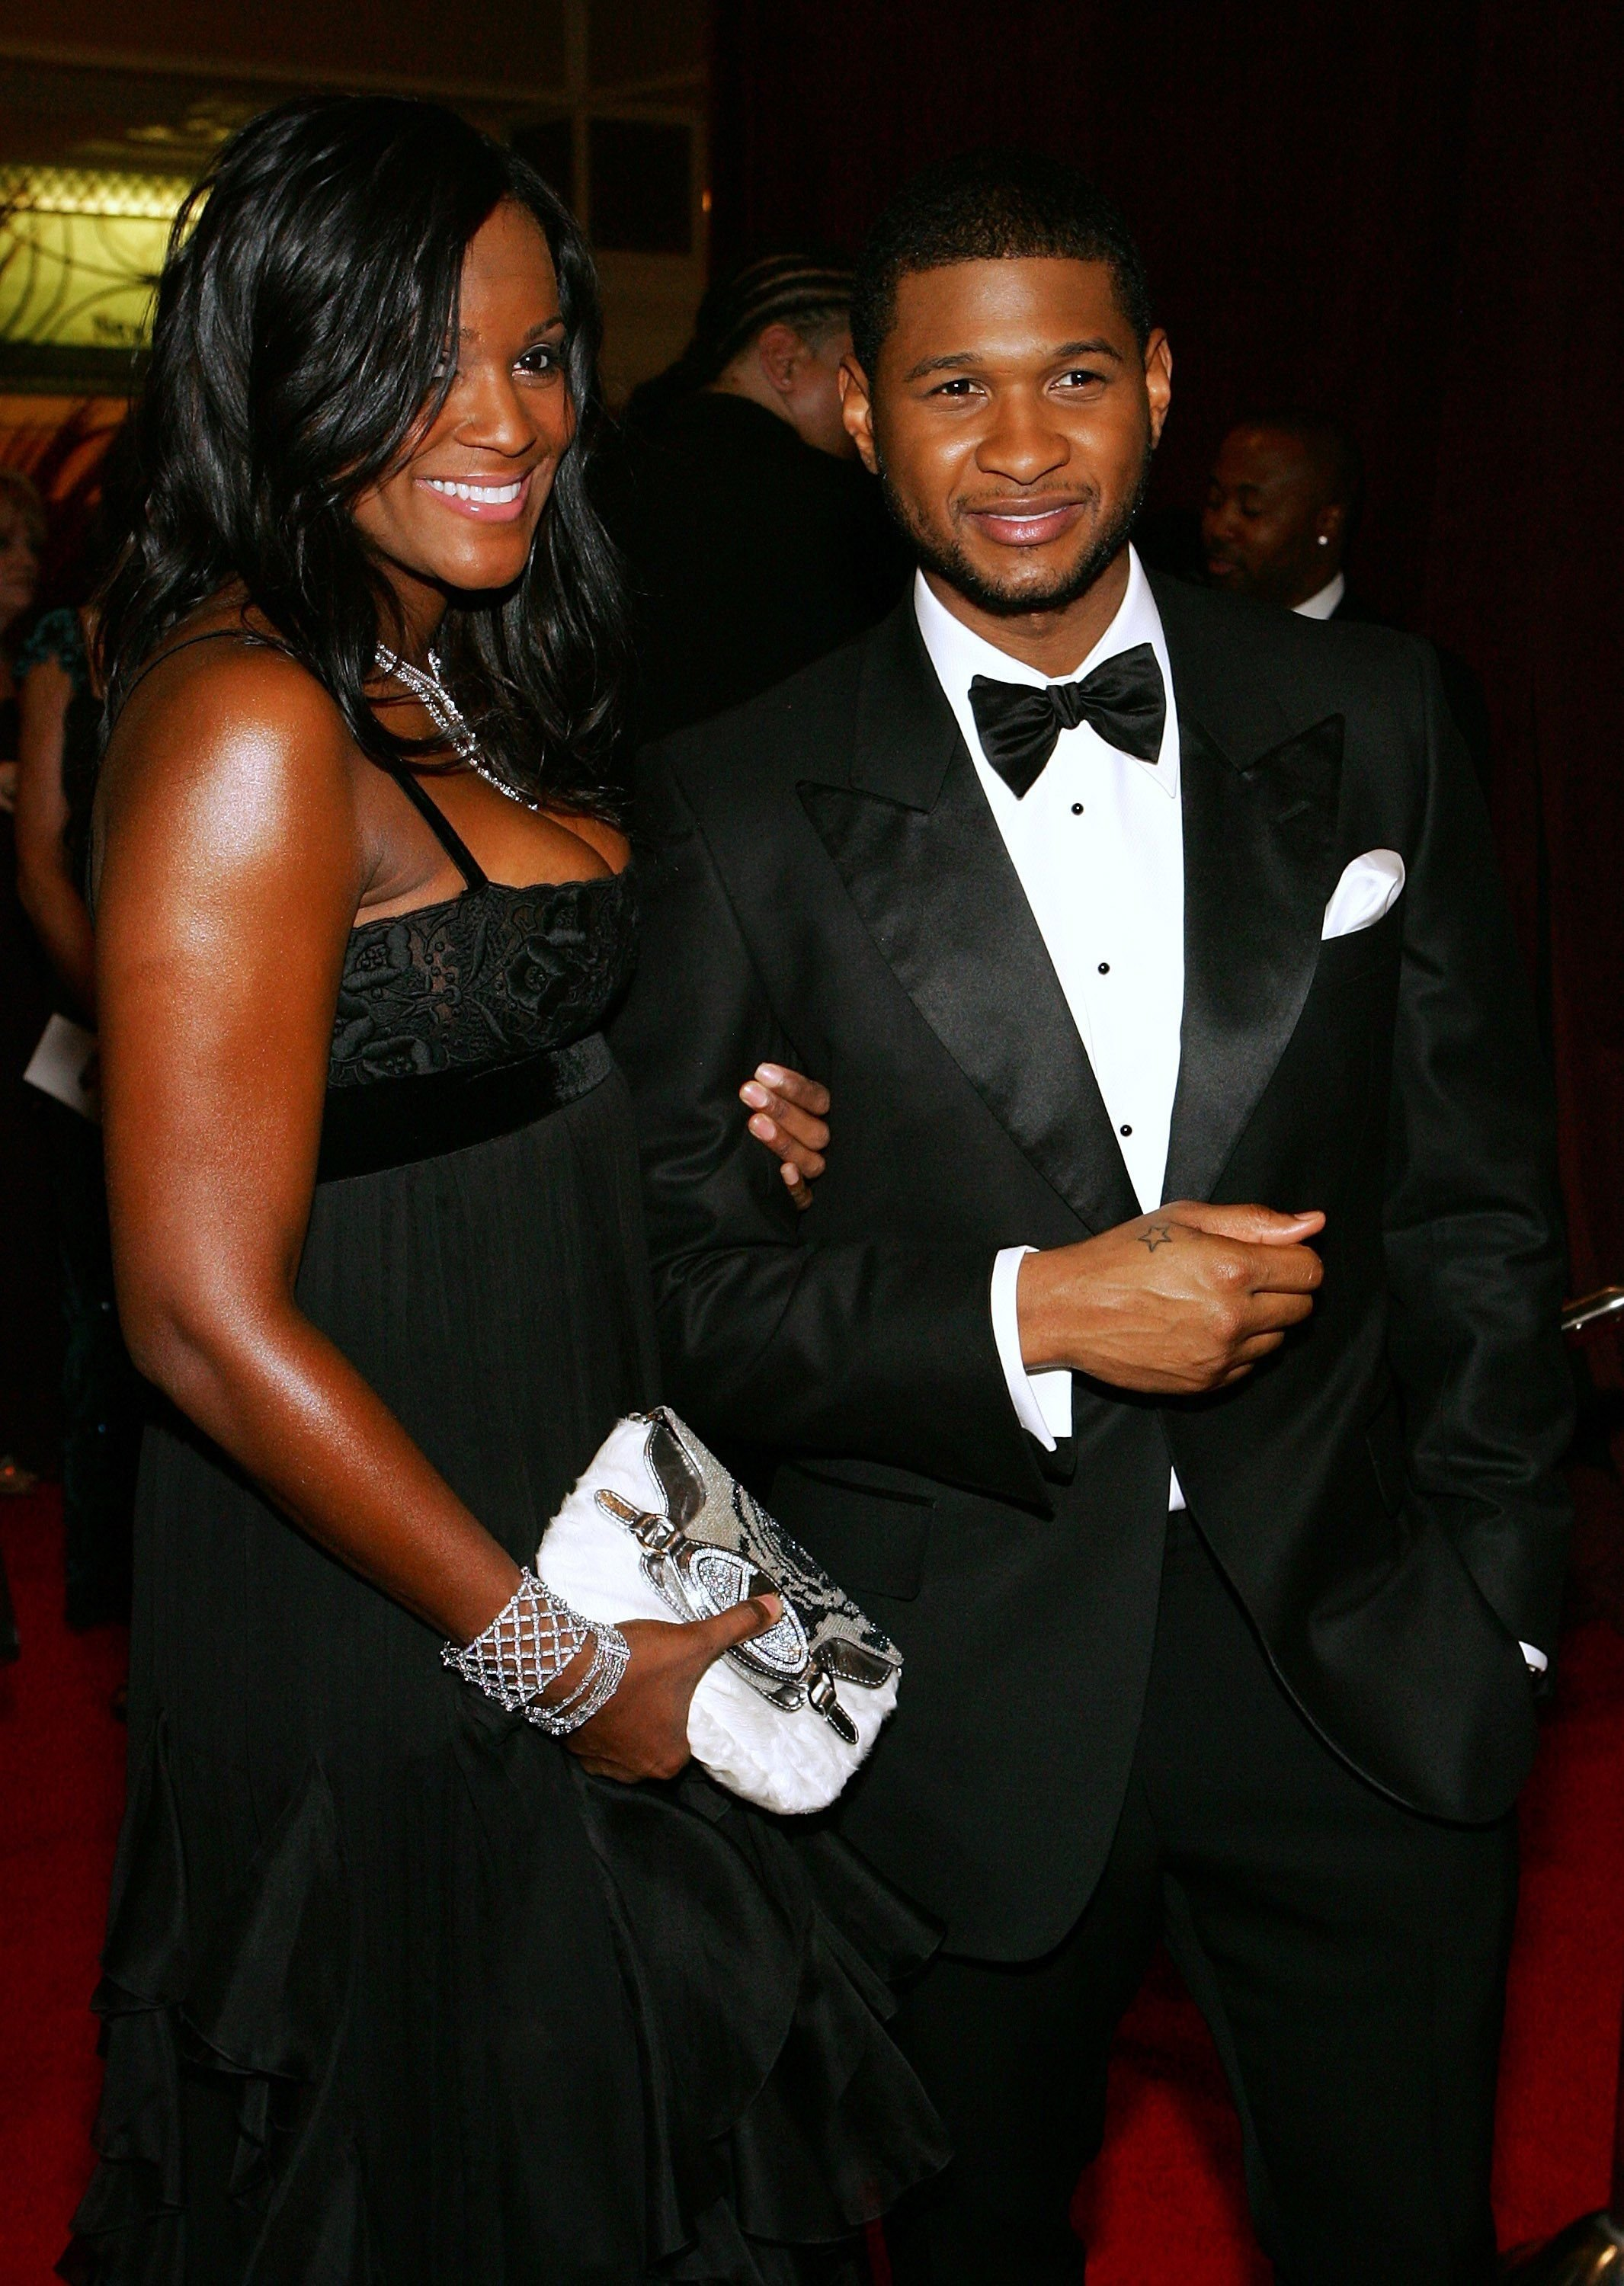 Usher Raymond and Tameka Foster attend the 15th annual Trumpet Awards at the Bellagio January 22, 2007 in Las Vegas, Nevada. | Source: Getty Images